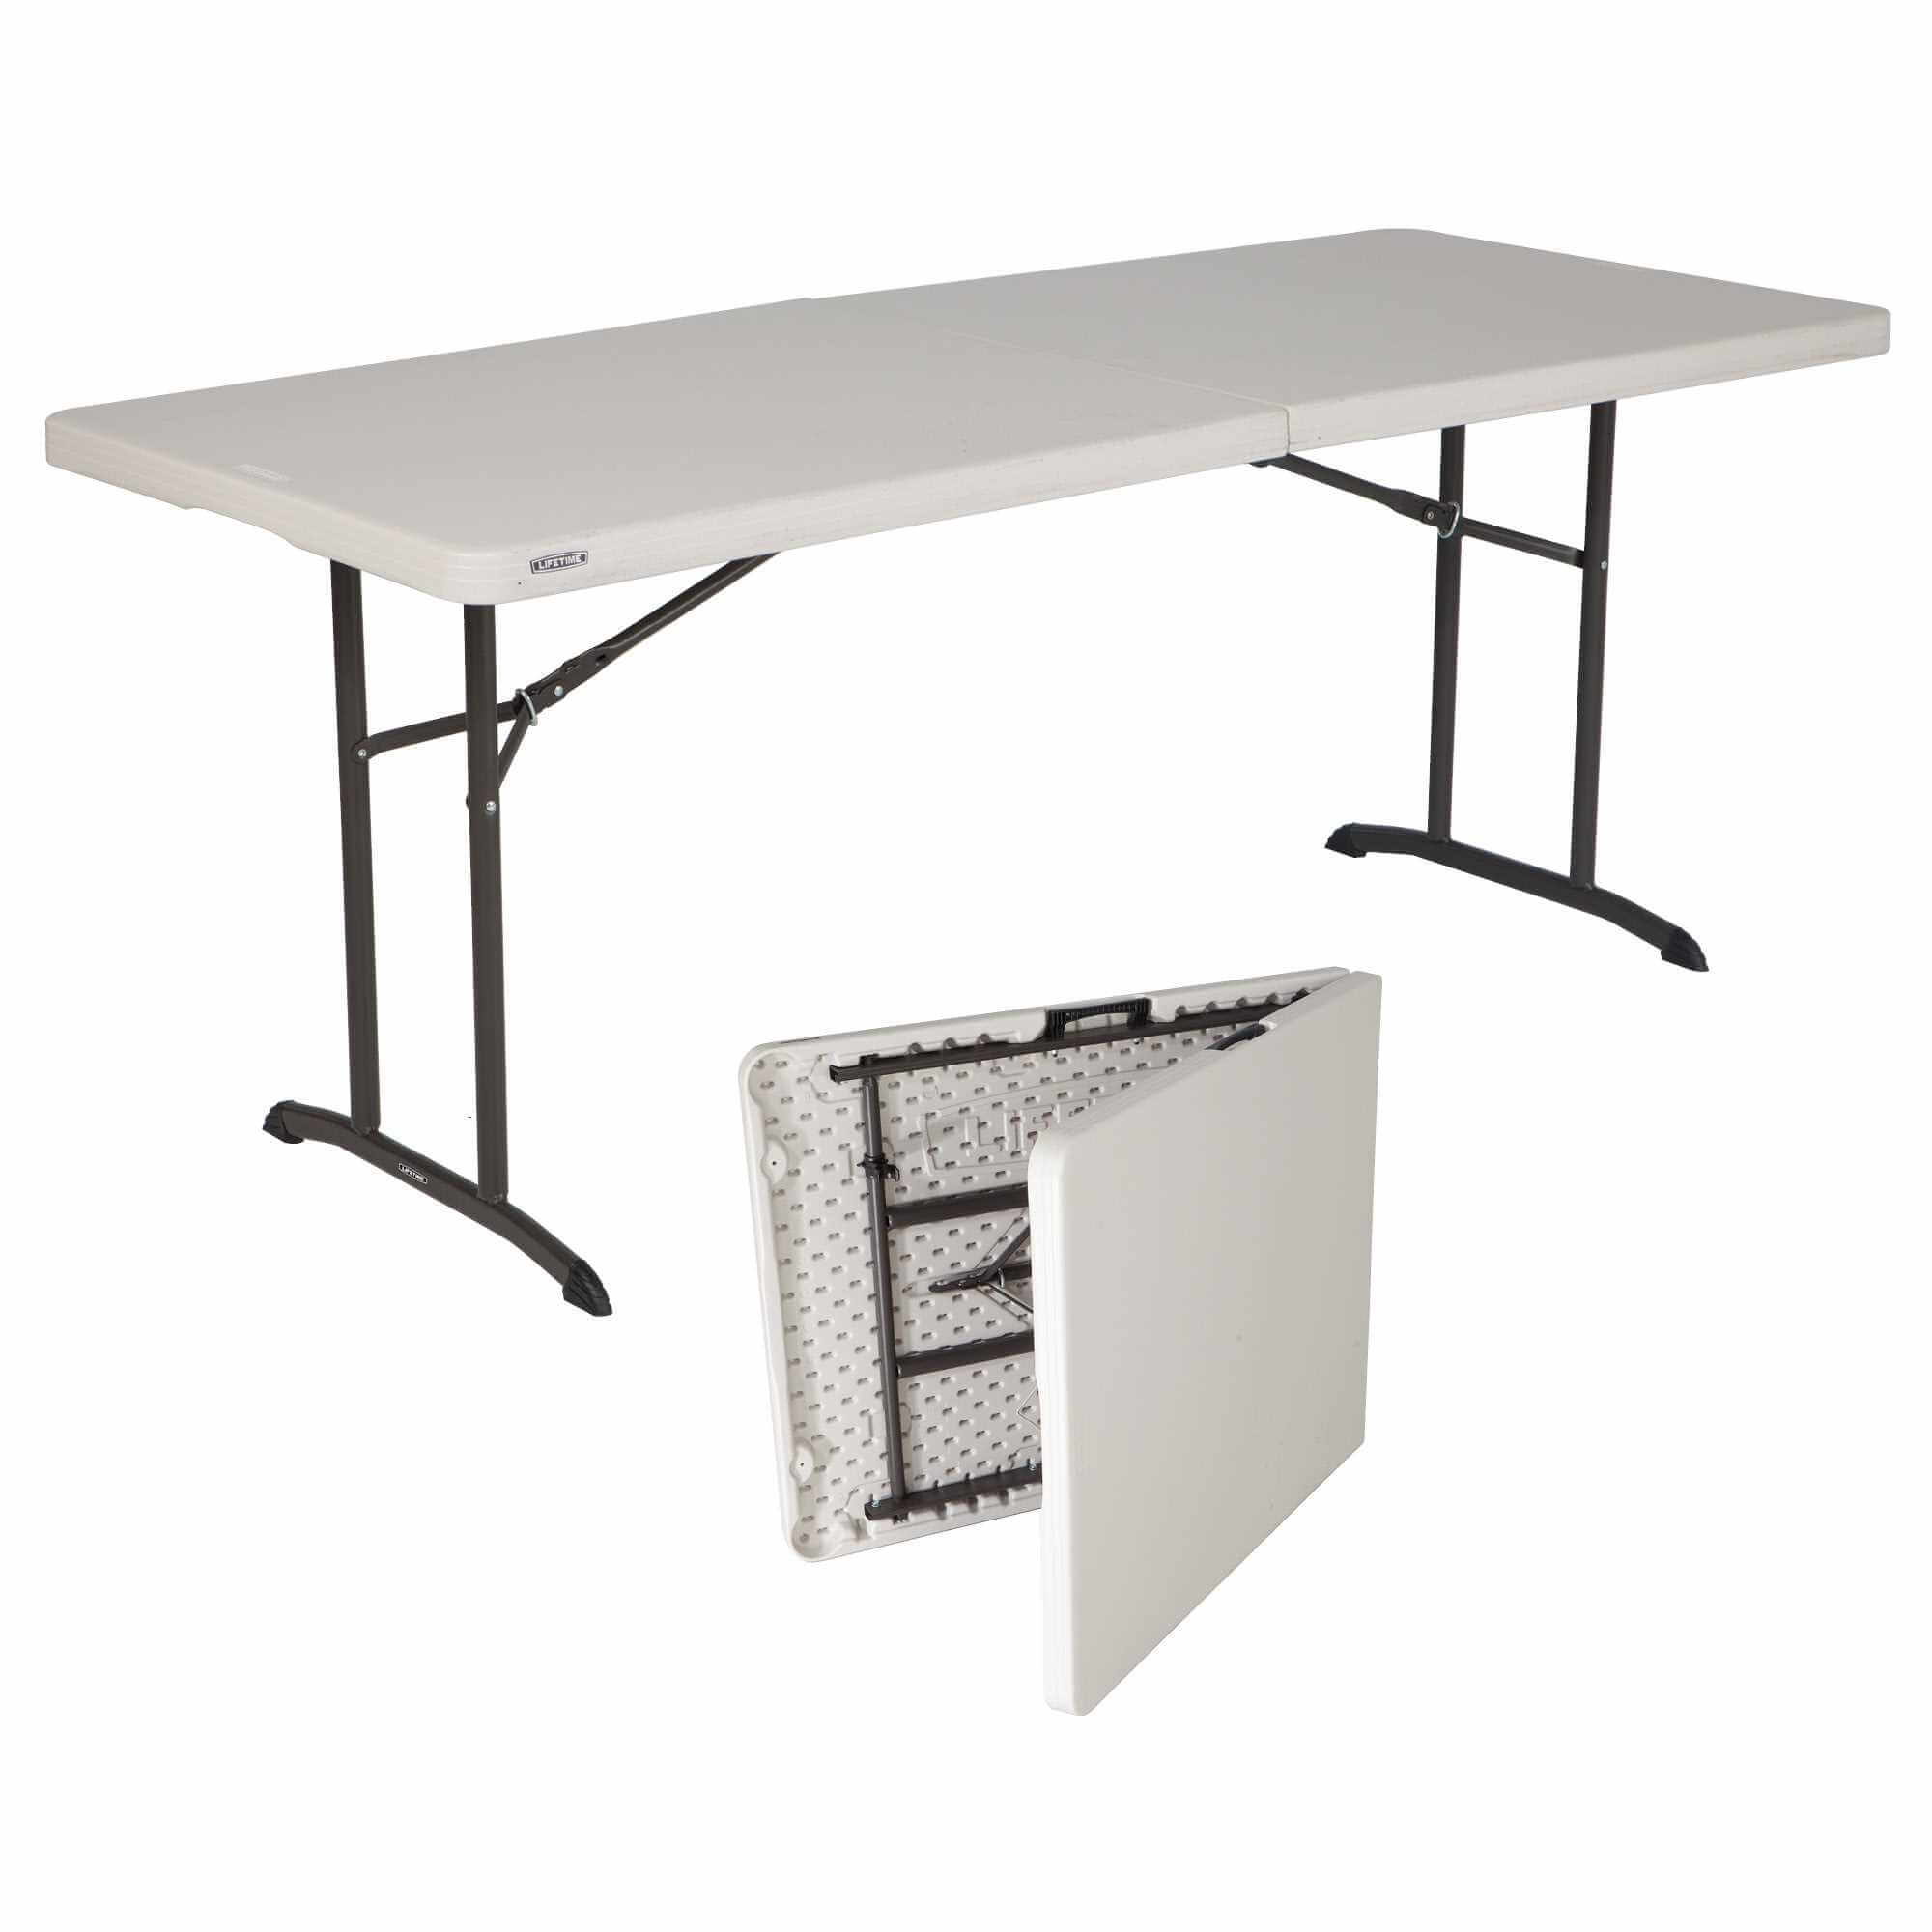 Table pliable en 2 (valise) rectangulaire 183cm / 8 personnes